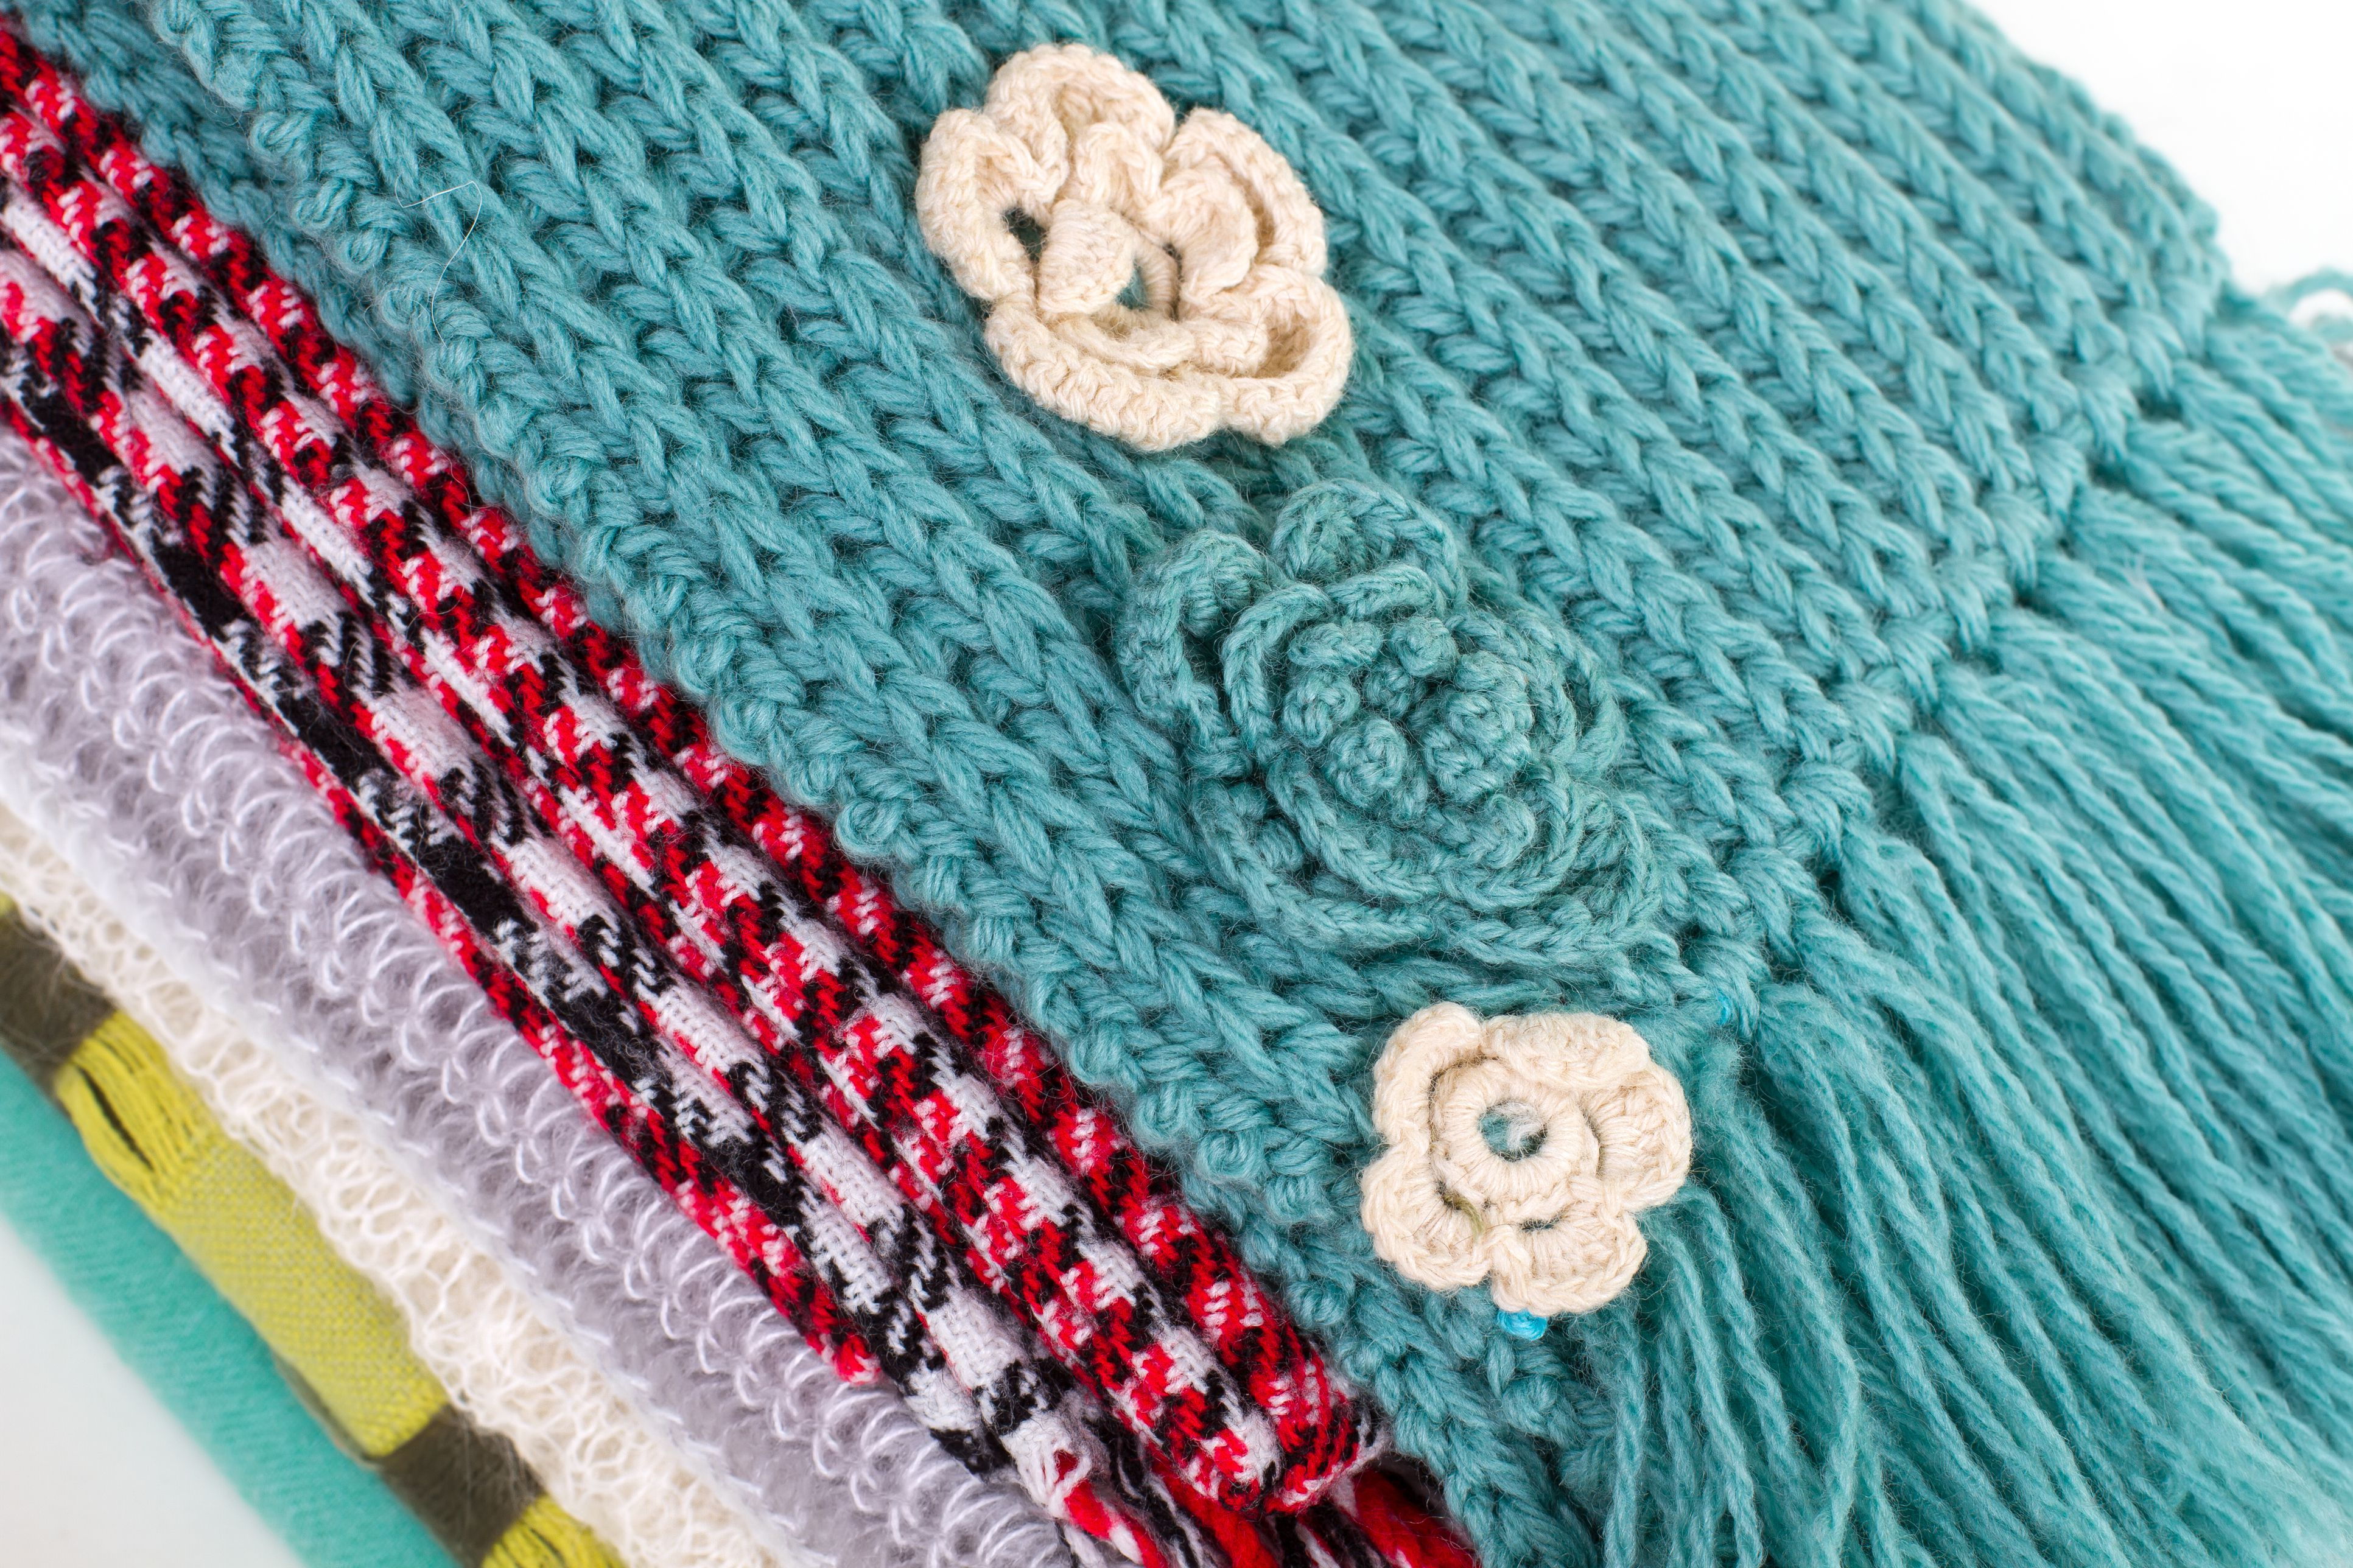 Beautiful crocheted flowers on the scarf.